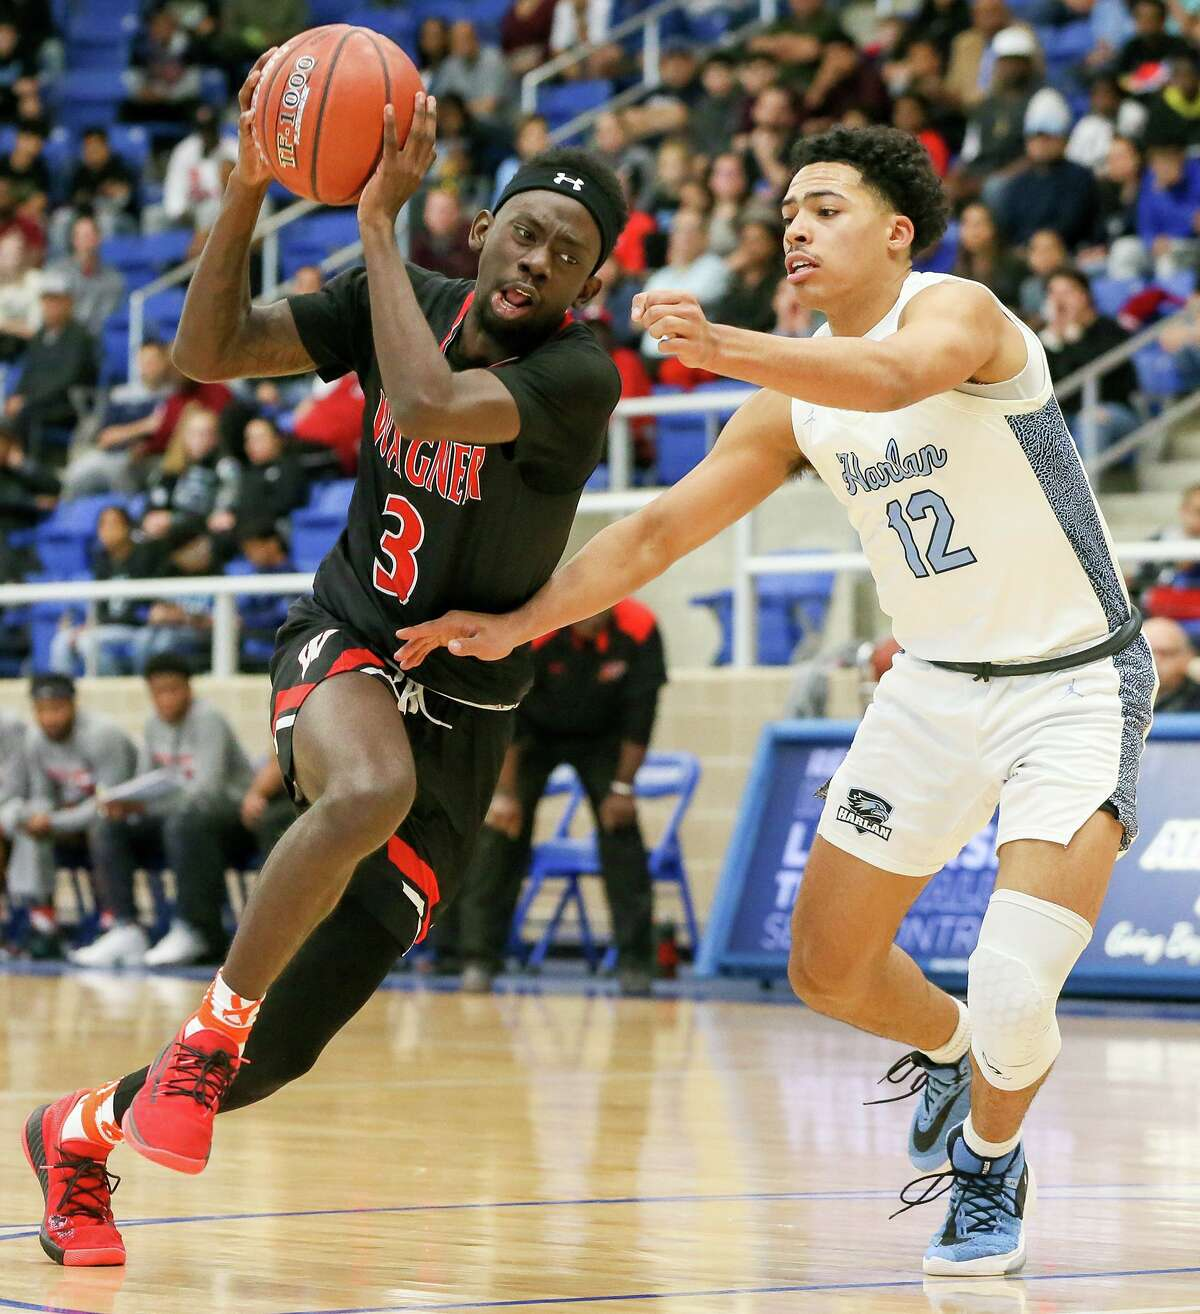 Wagner's Braelon Seals, left, drives on Harlan's Zarion Pitre in the first half of their Class 5A Regional final game at Northside Gym on Saturday, March 7, 2020. Wagner advanced to the state tournament with a 64-48 victory over Harlan.